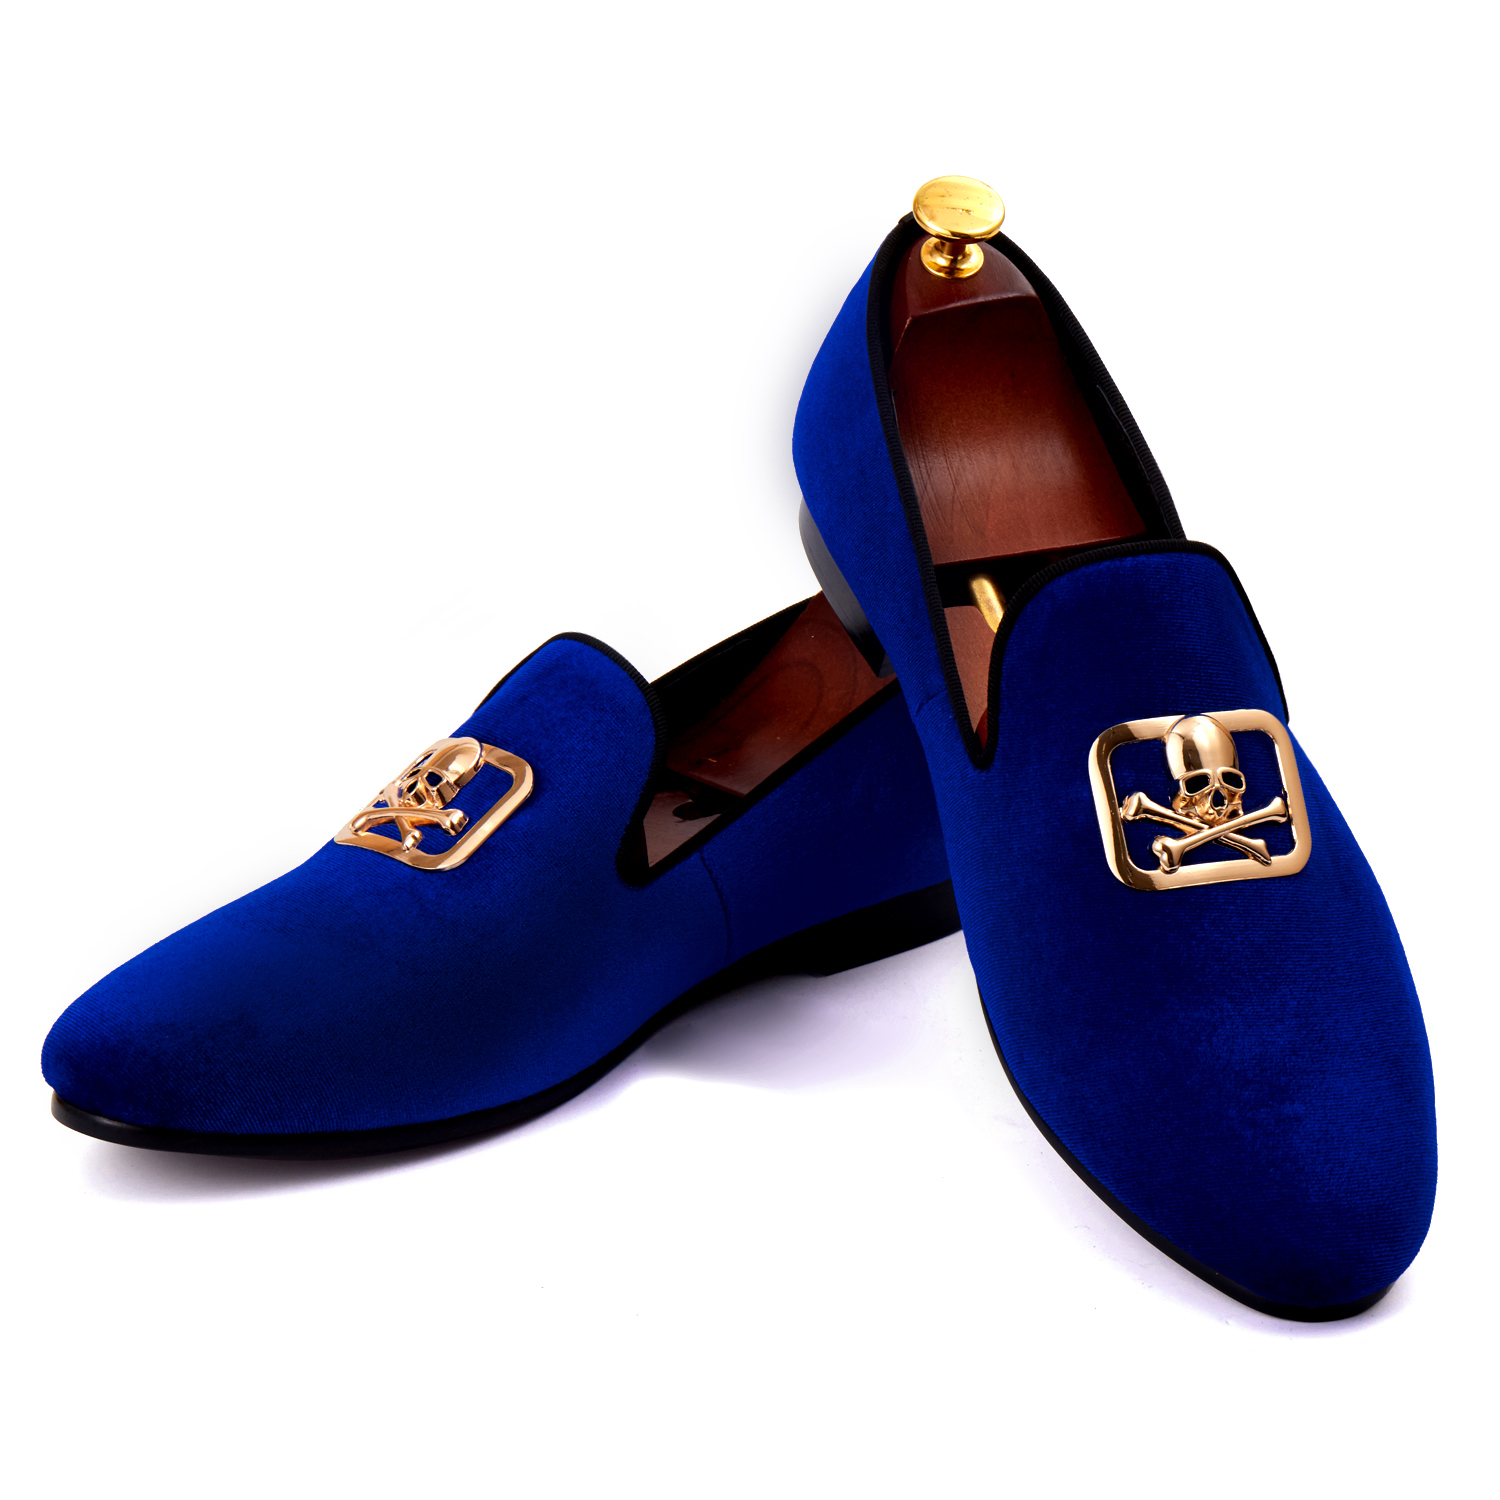 Harpelunde European Men Shoes Blue Velvet Loafers Skull Buckle Dress Shoes Size 6-14